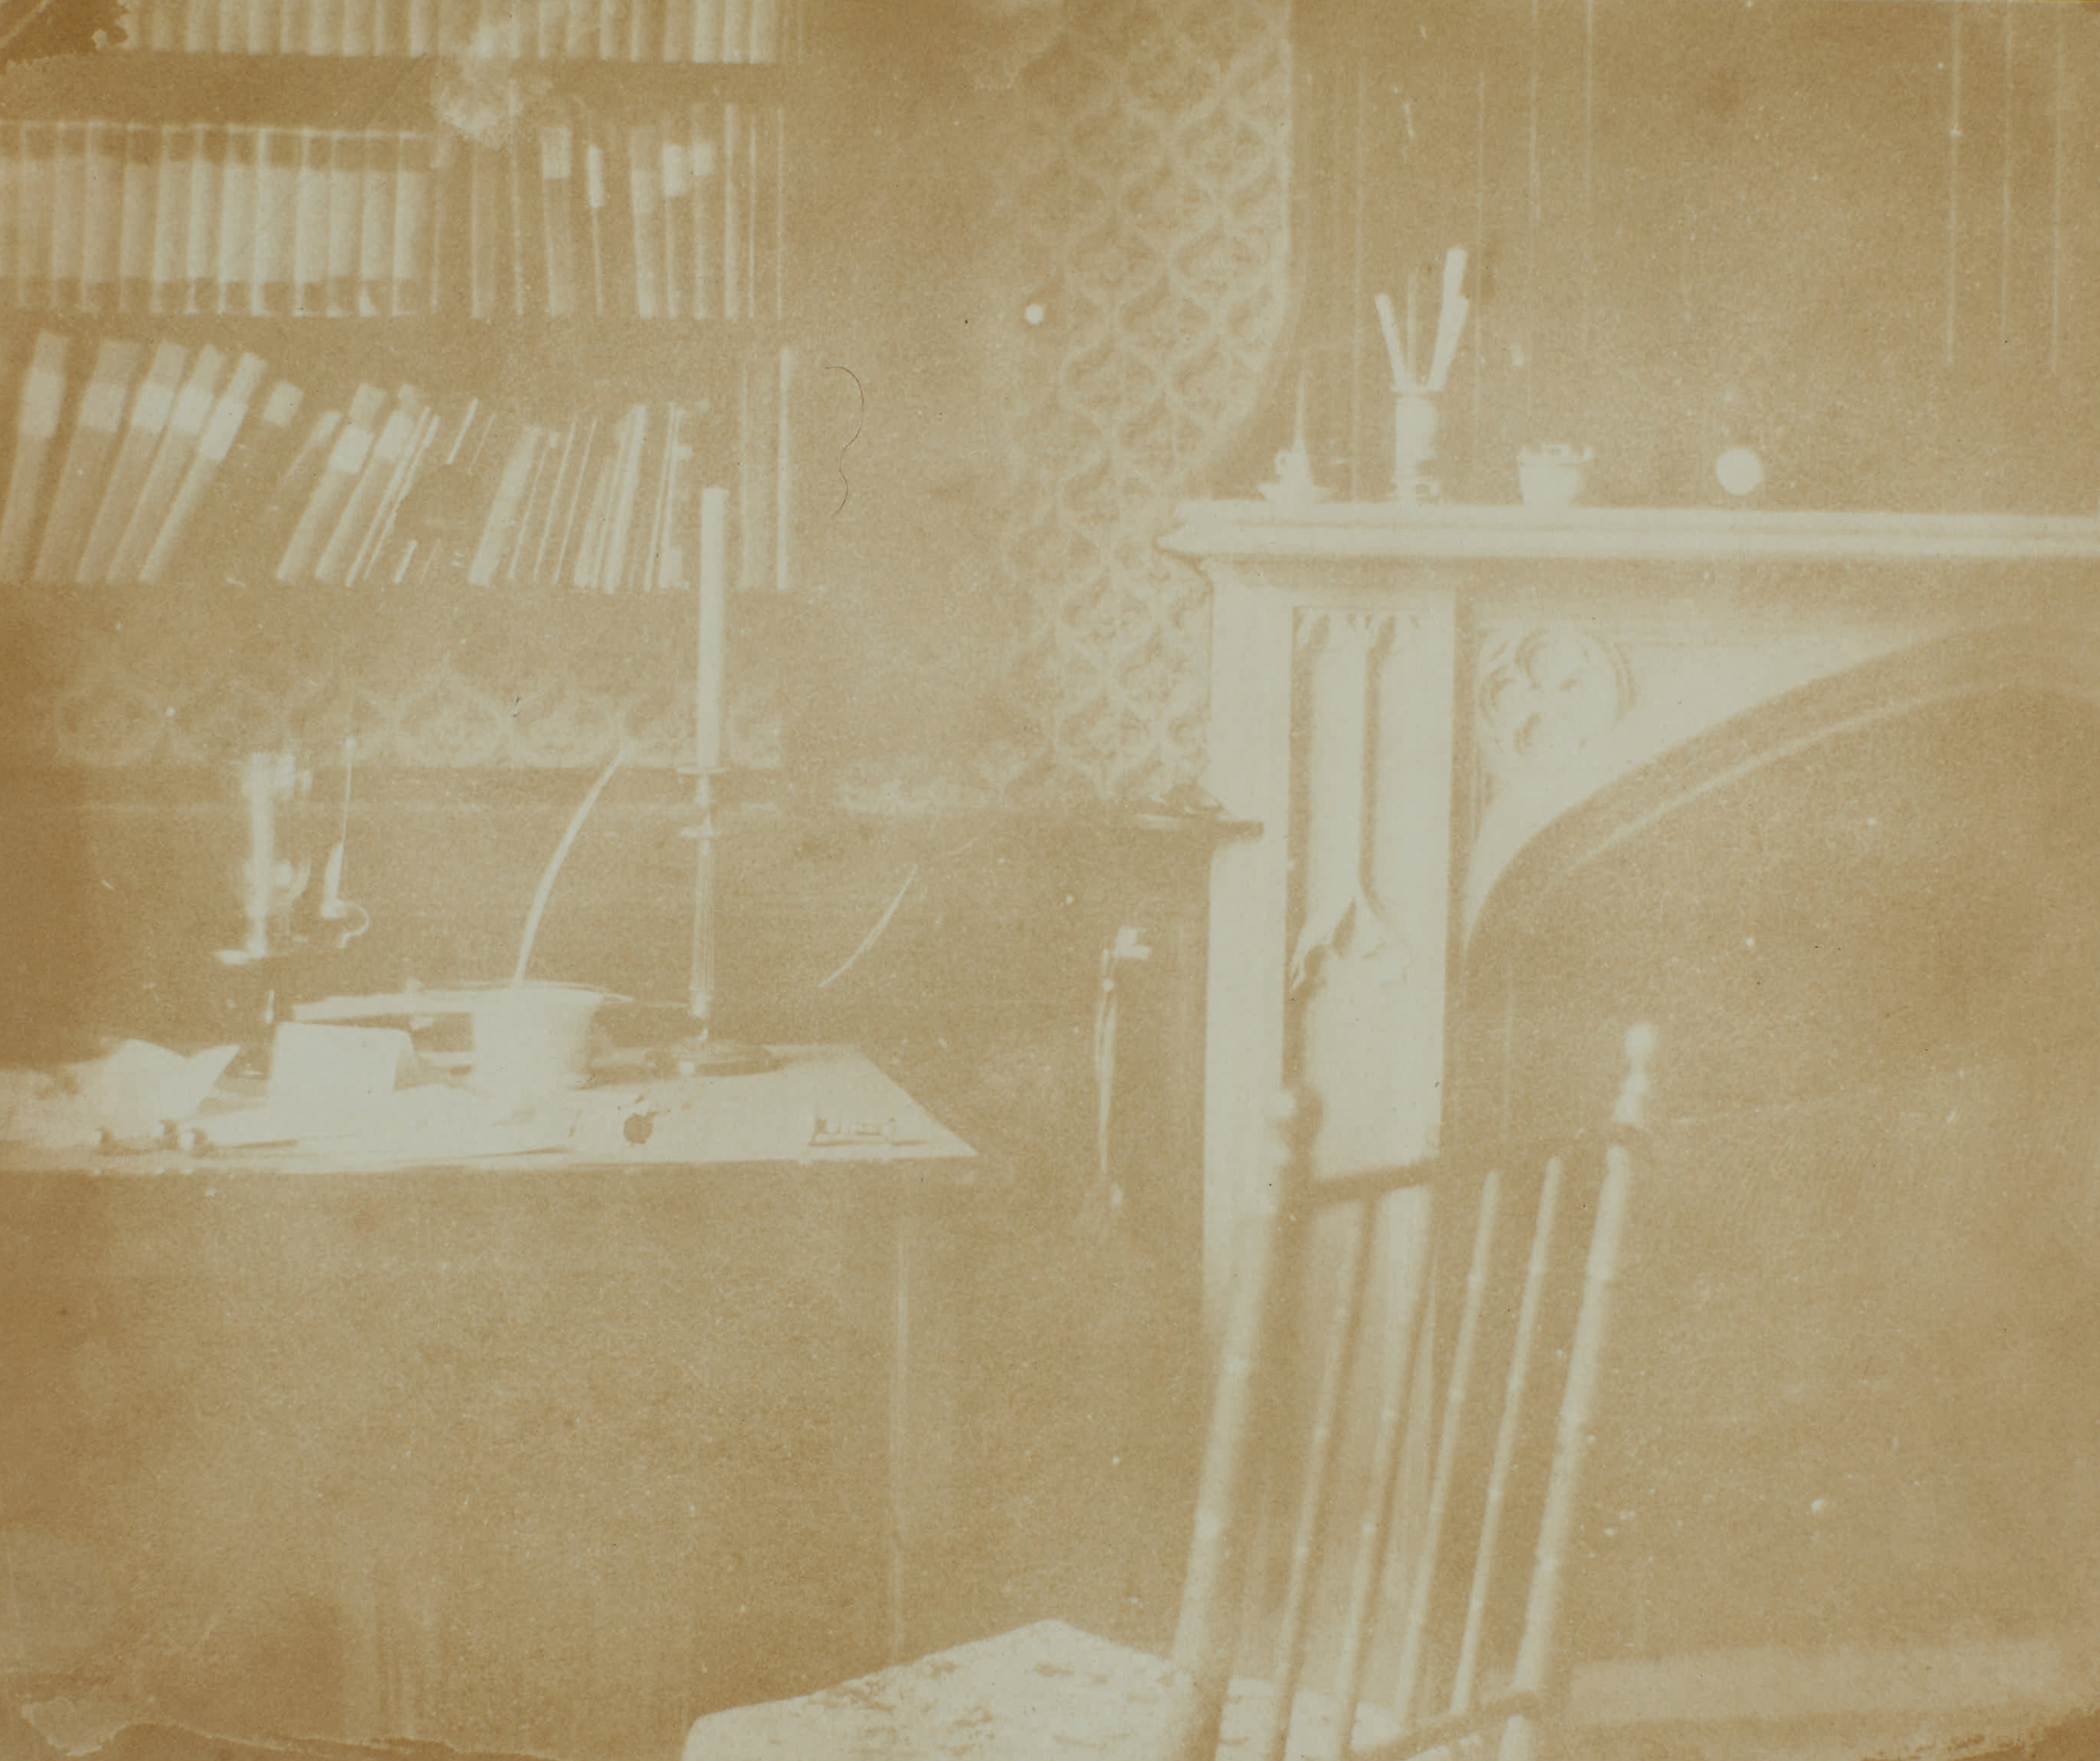 Fotó: William Henry Fox Talbot:<br />Yellow Room at Lacock Abbey (variously titled Talbot's Study and Chimneypiece, South Gallery) (date unknown, possibly 1840)<br />William Henry Fox Talbot Archive<br />Courtesy of Sotheby's